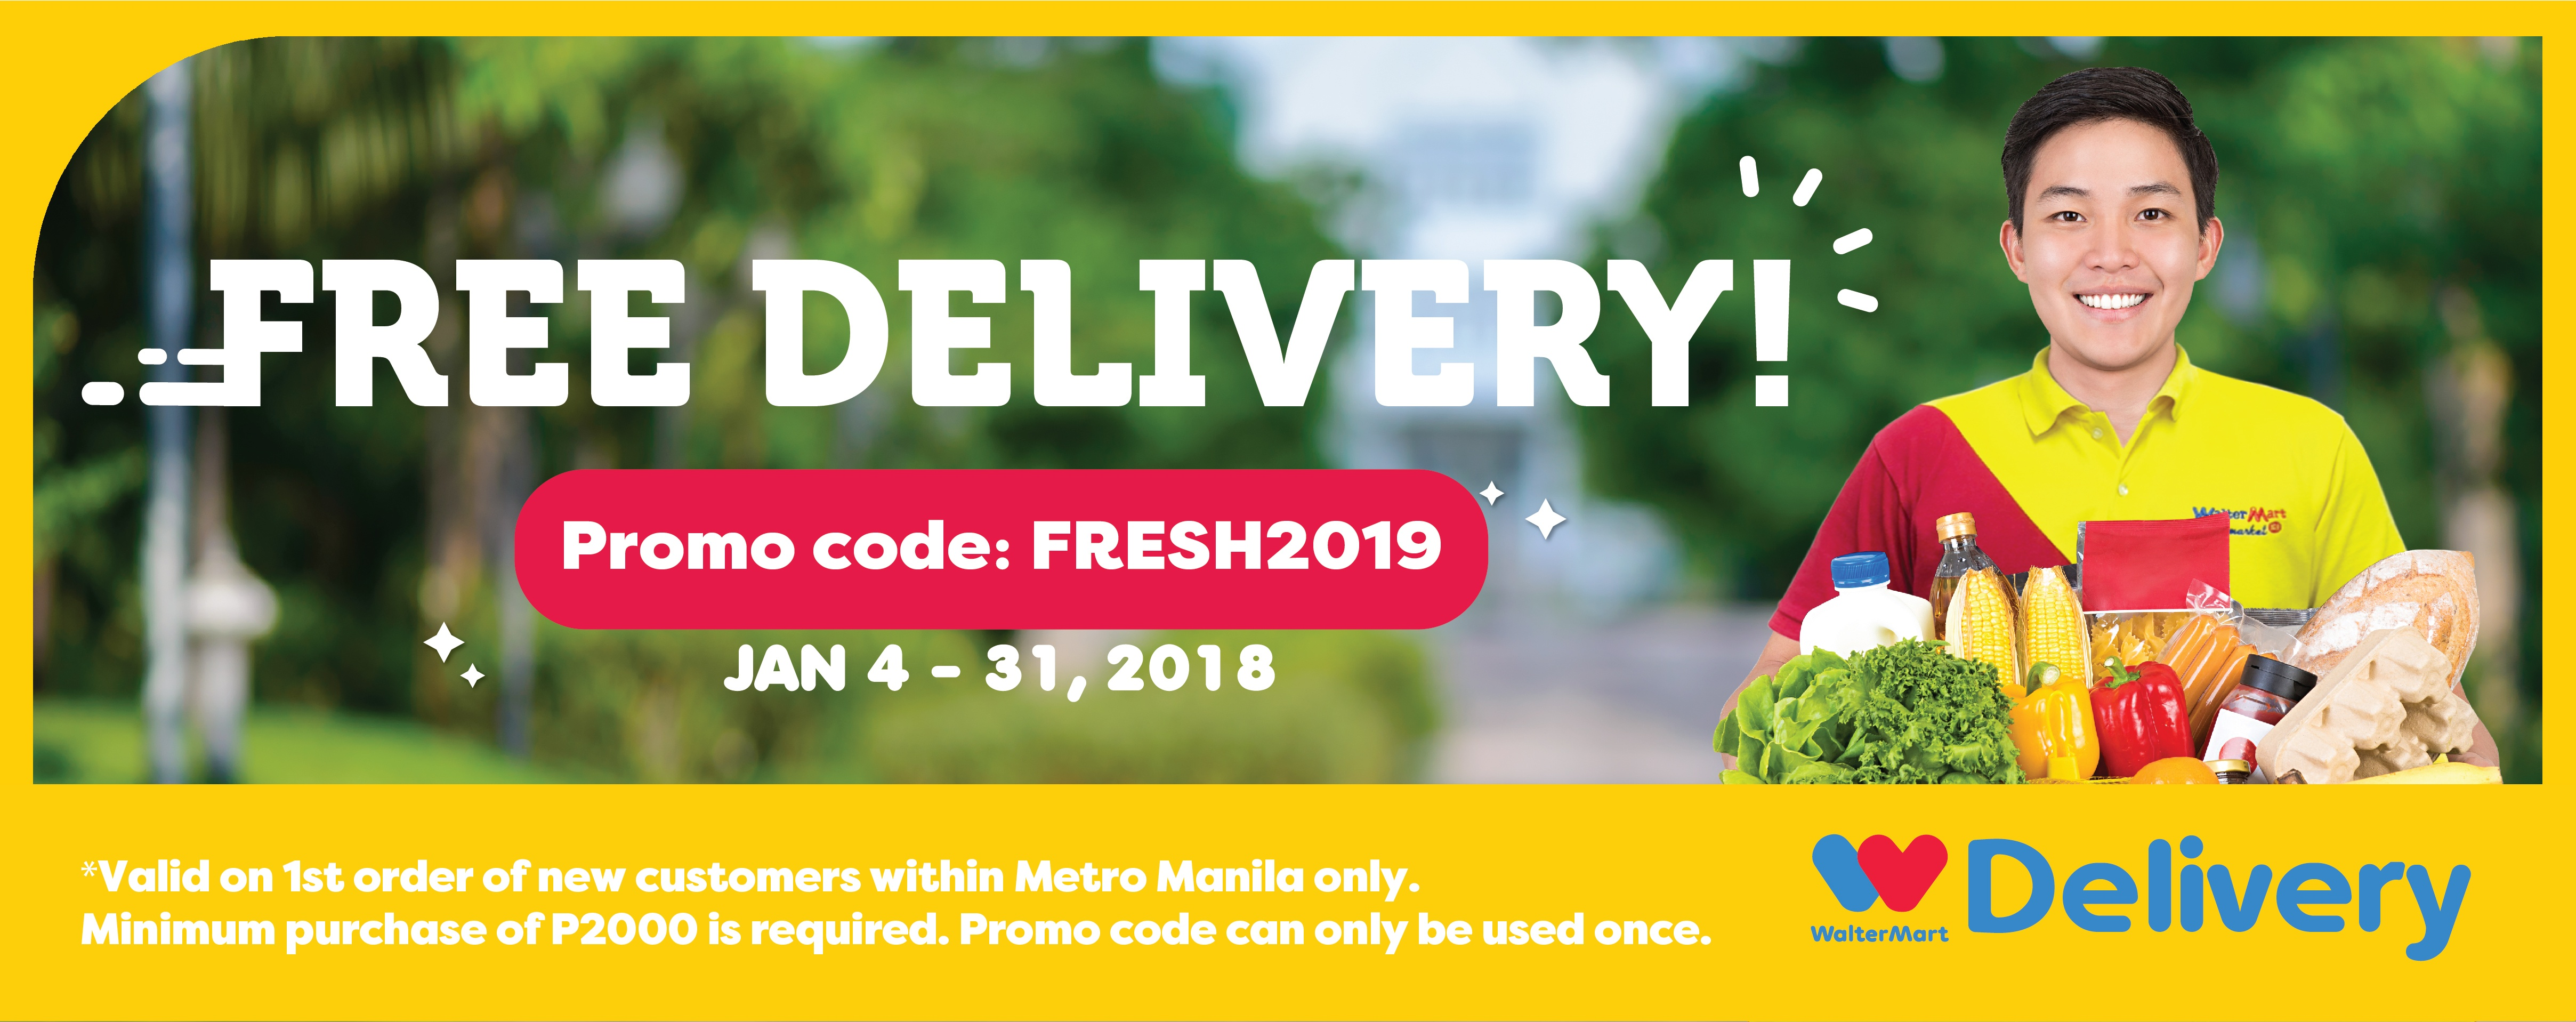 Free Delivery_Web Banners